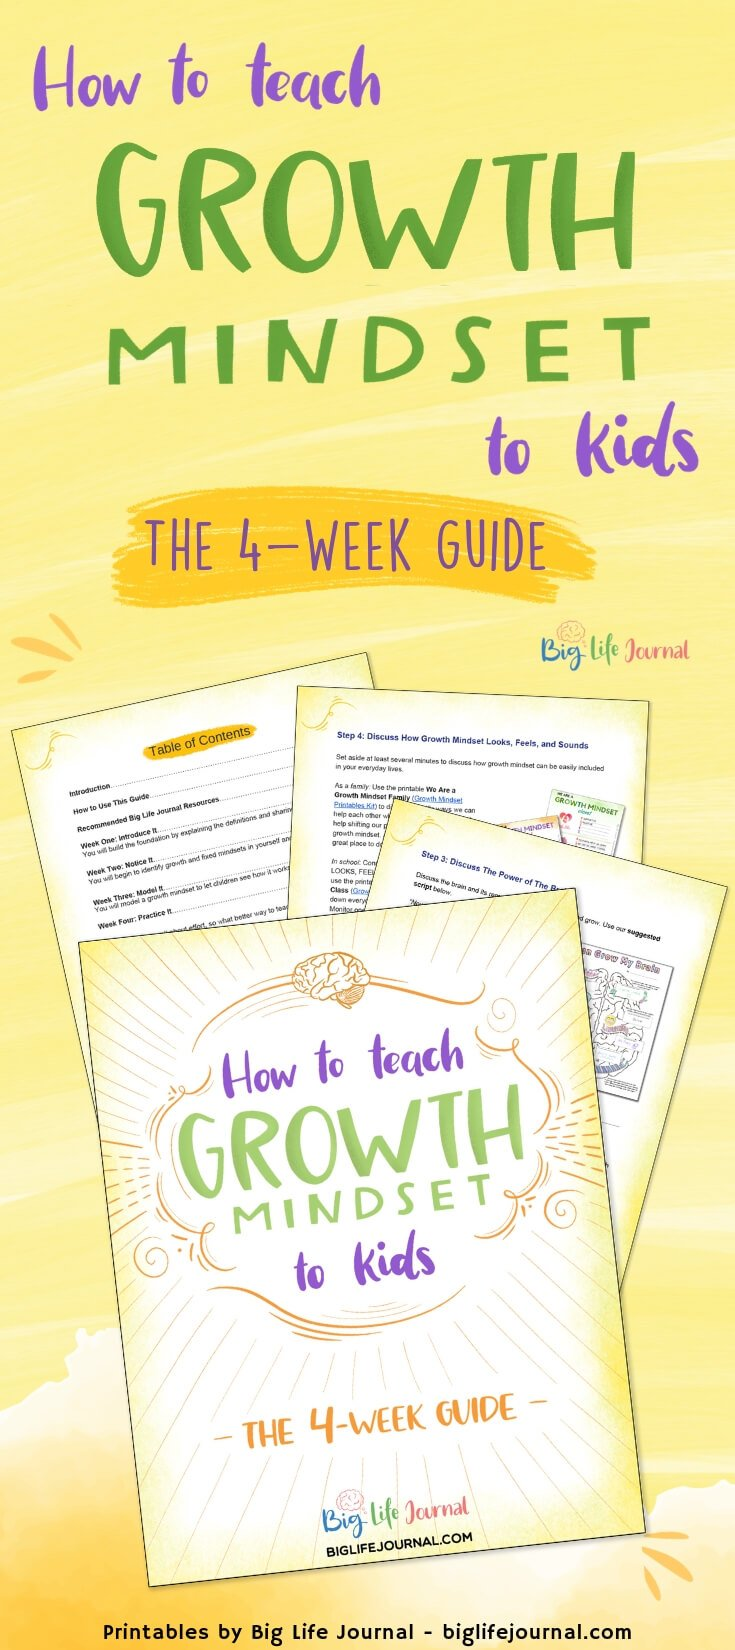 How To Teach Growth Mindset To Kids The 4 Week Guide Big Life Journal